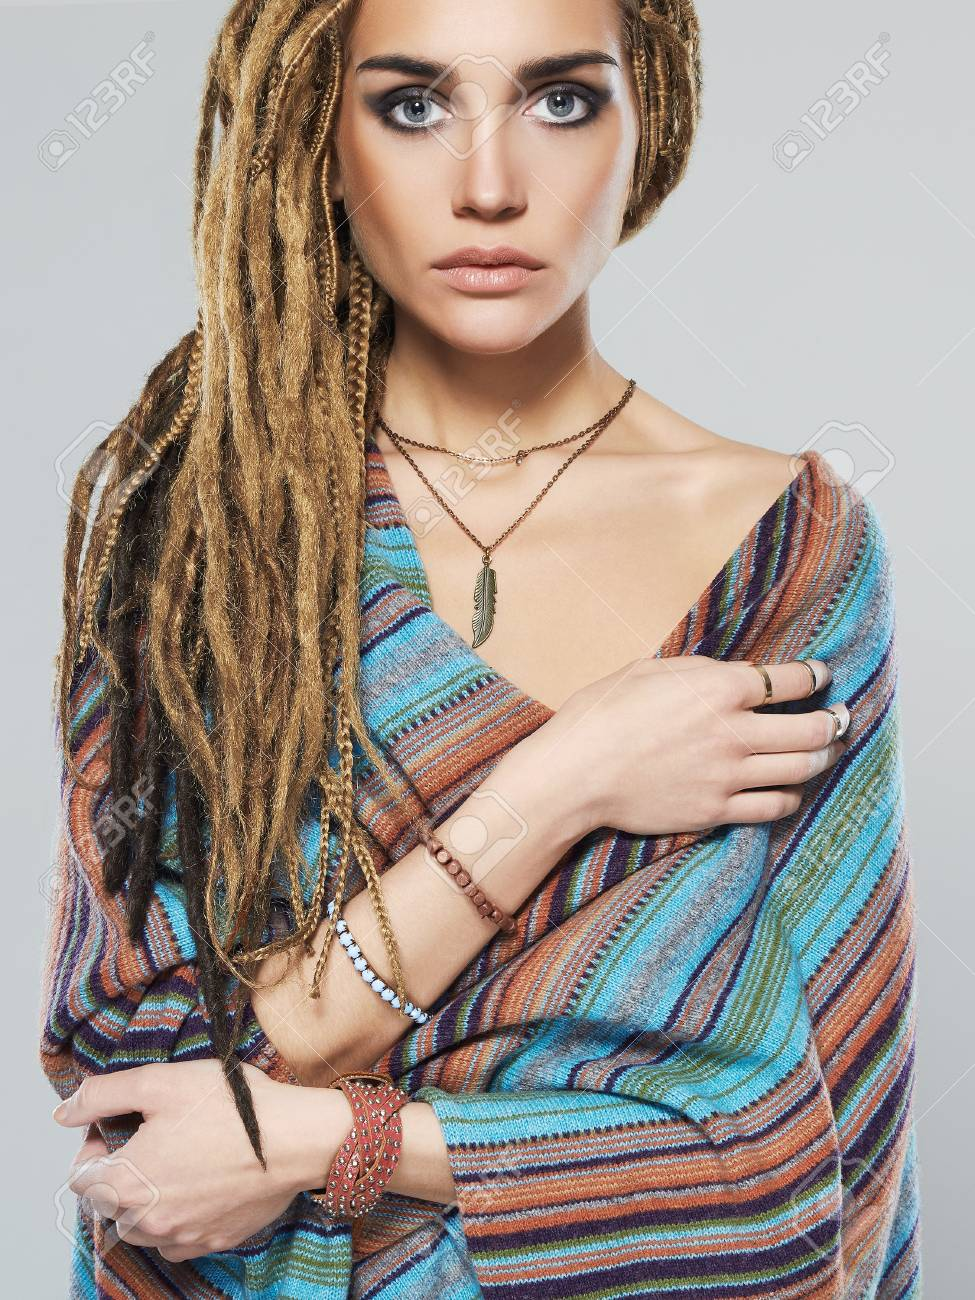 Beautiful Girl With Dreadlocks Hairstyleyoung Woman With Braids